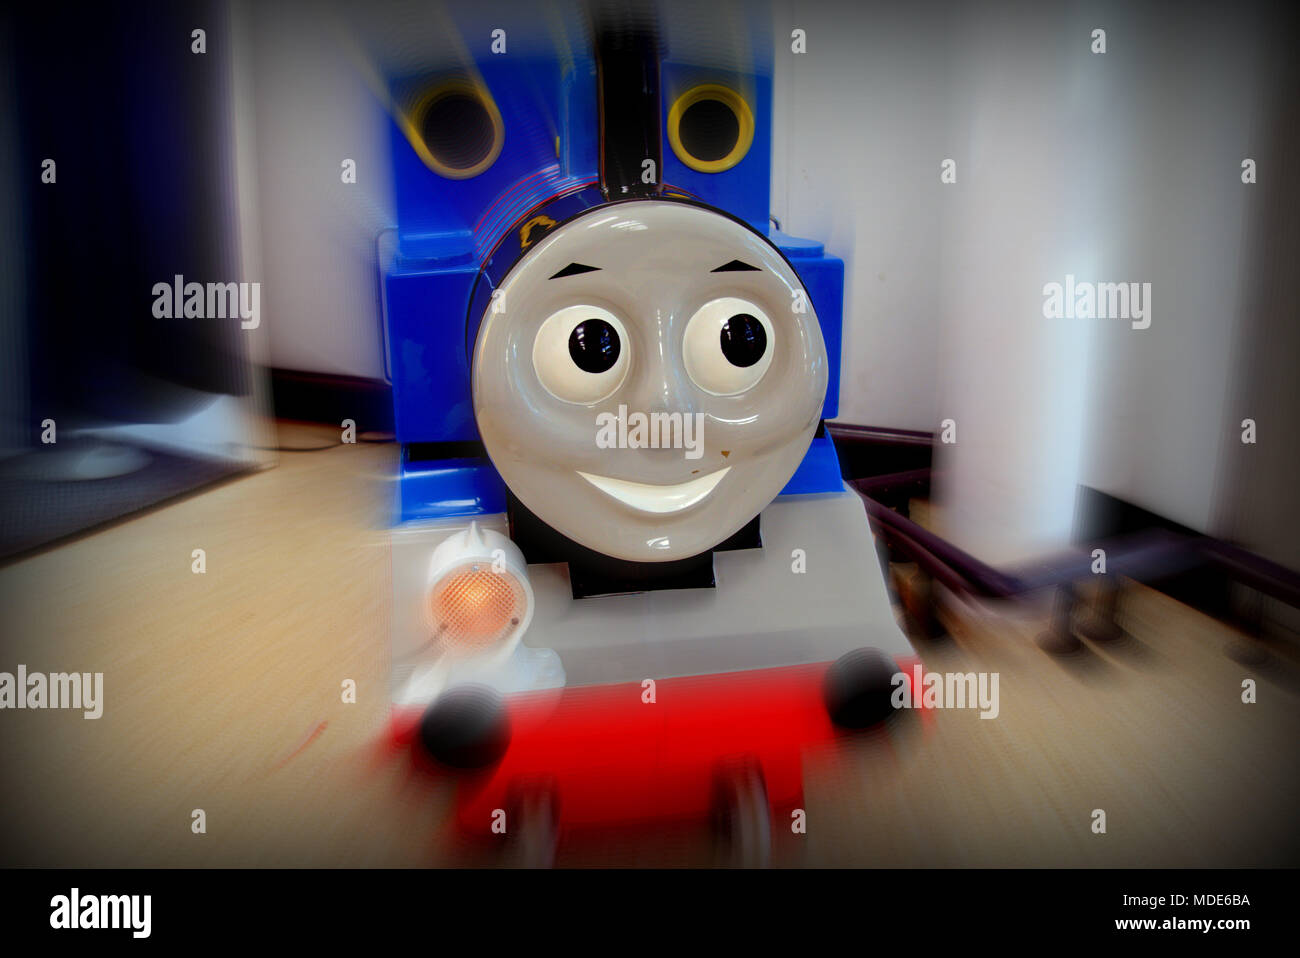 Thomas the tank engine cartoon character as a children's ride with motion blur close up toy  smiling happy face with nobody copy space Stock Photo